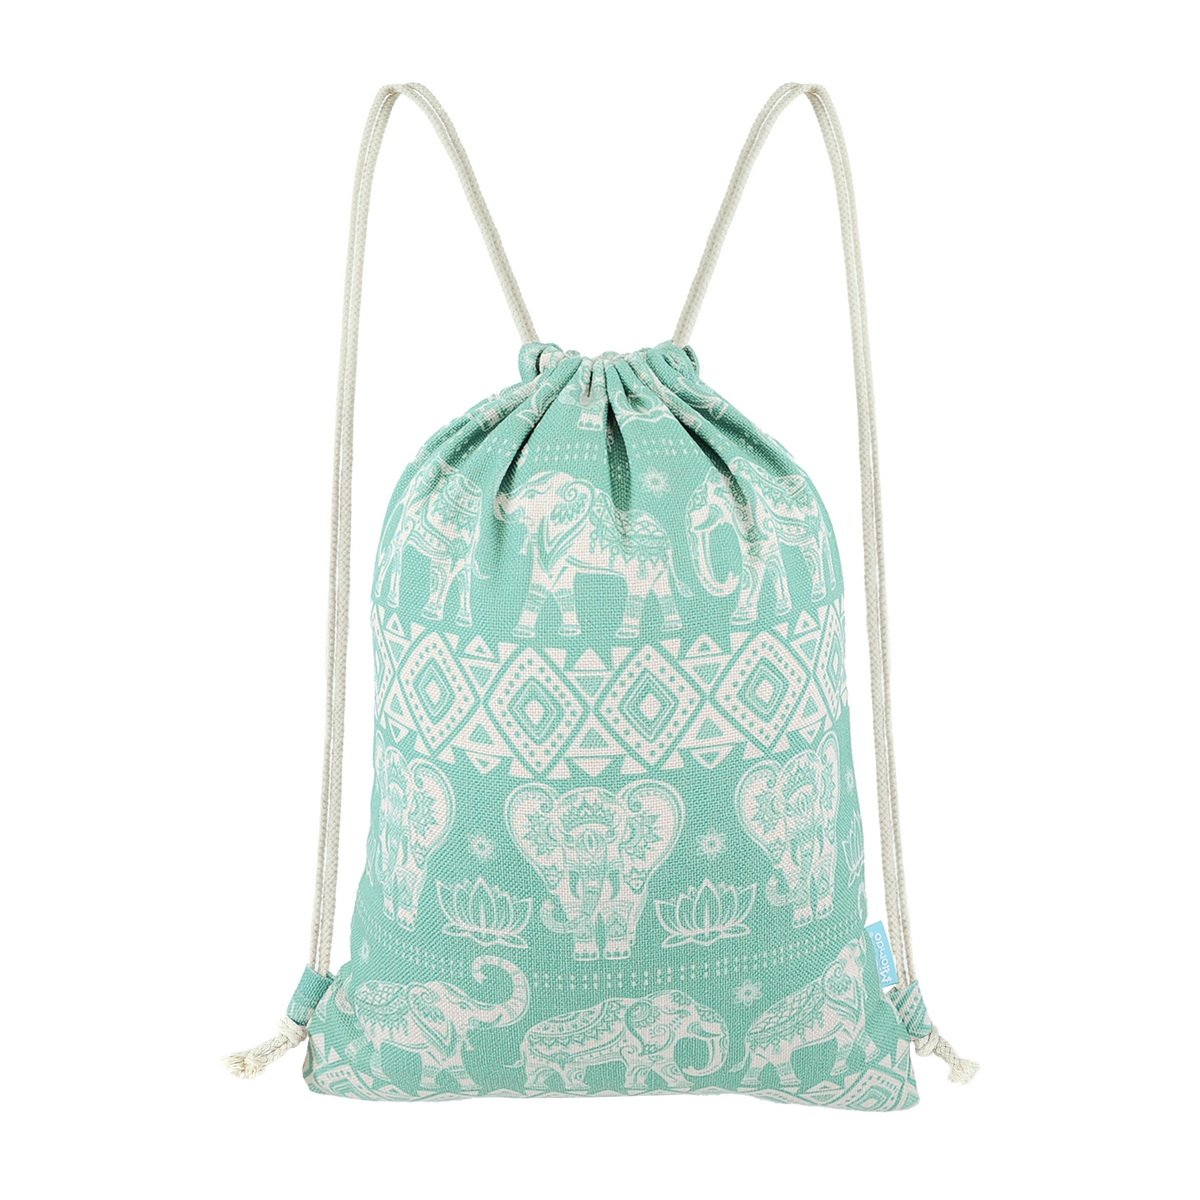 Miomao Gym Sackpack Drawstring Backpack Elephant Cinch Pack Geometric Sinch Sack With Pockets Sport String Bag Yoga Daypack Beach Gift Bag For Men & Women 13 X 18 Inches Fair Aqua